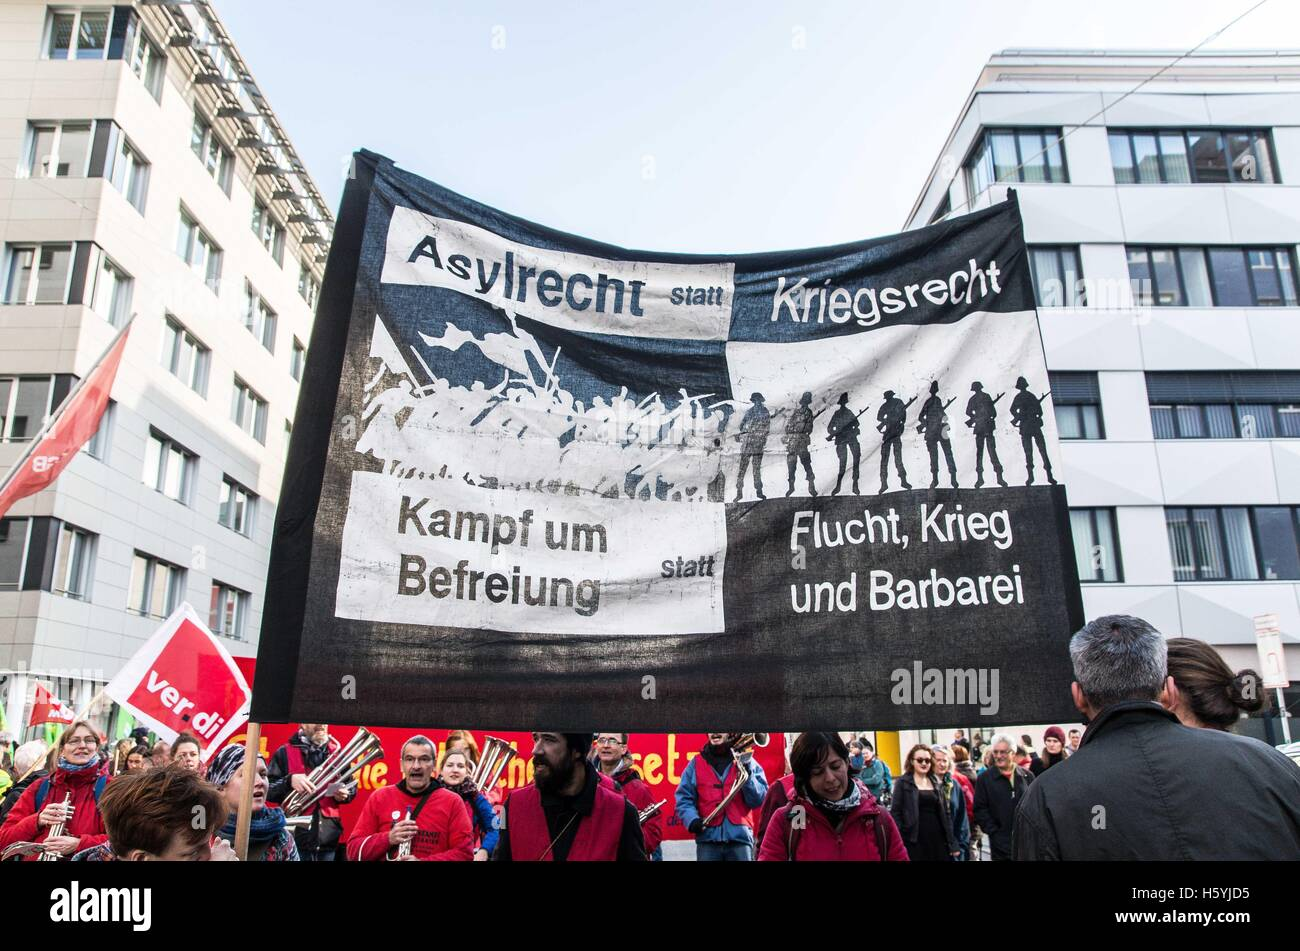 Munich, Germany. 22nd Oct, 2016. 1,800 Residents, students, and labor unions in Munich demonstrated against the - Stock Image